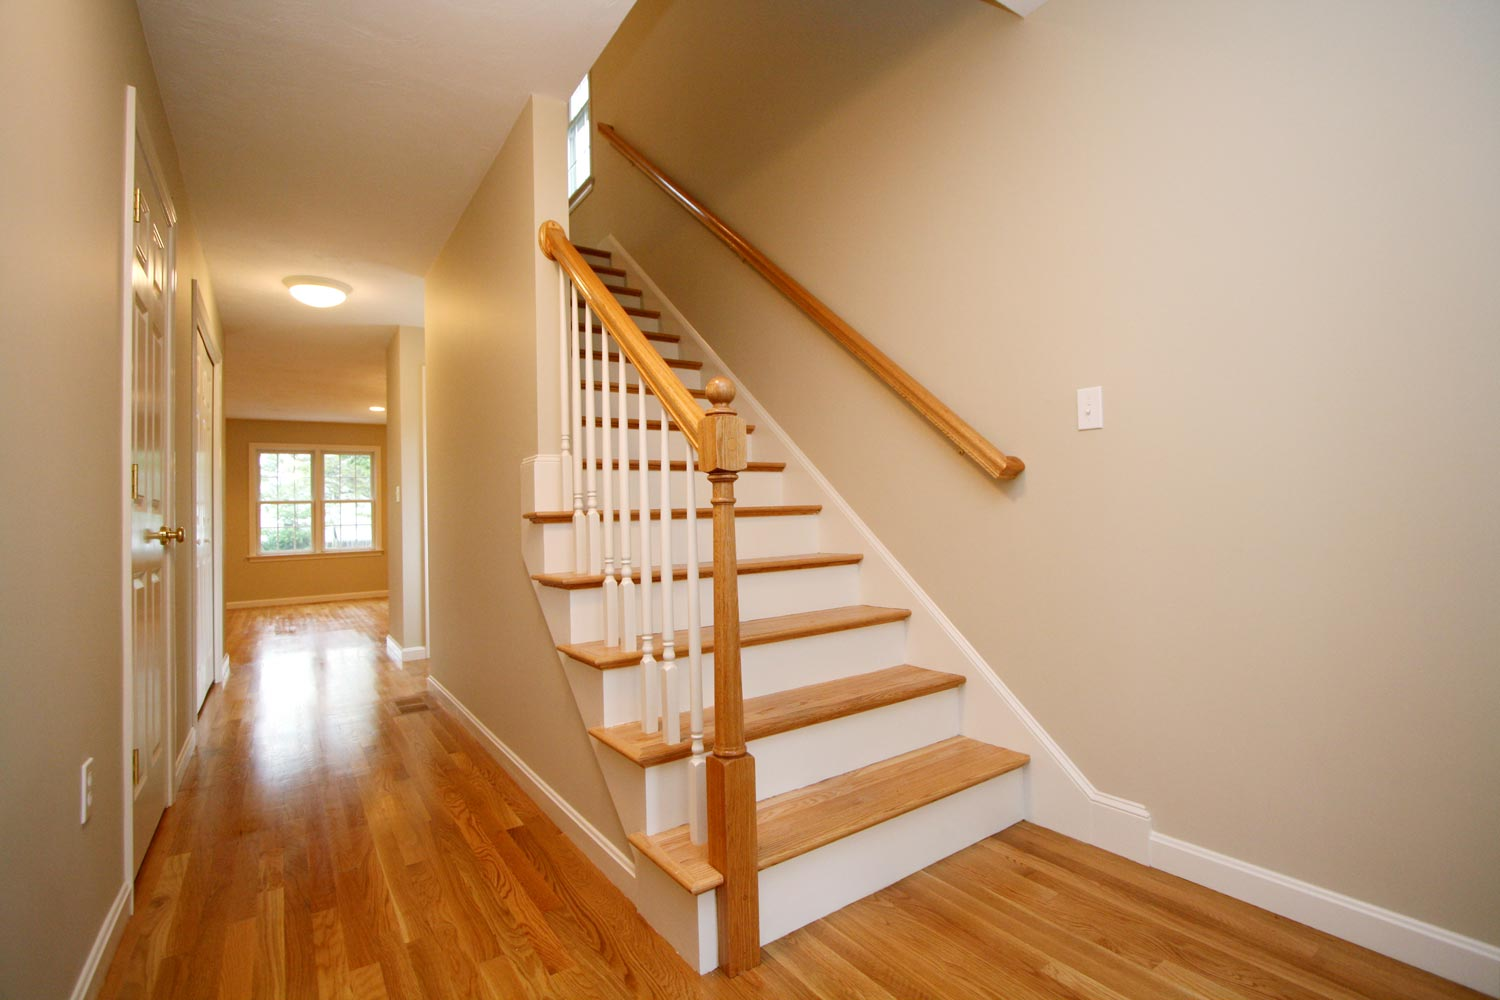 Staircase Designs For Small House Stairs For House Staircase Design